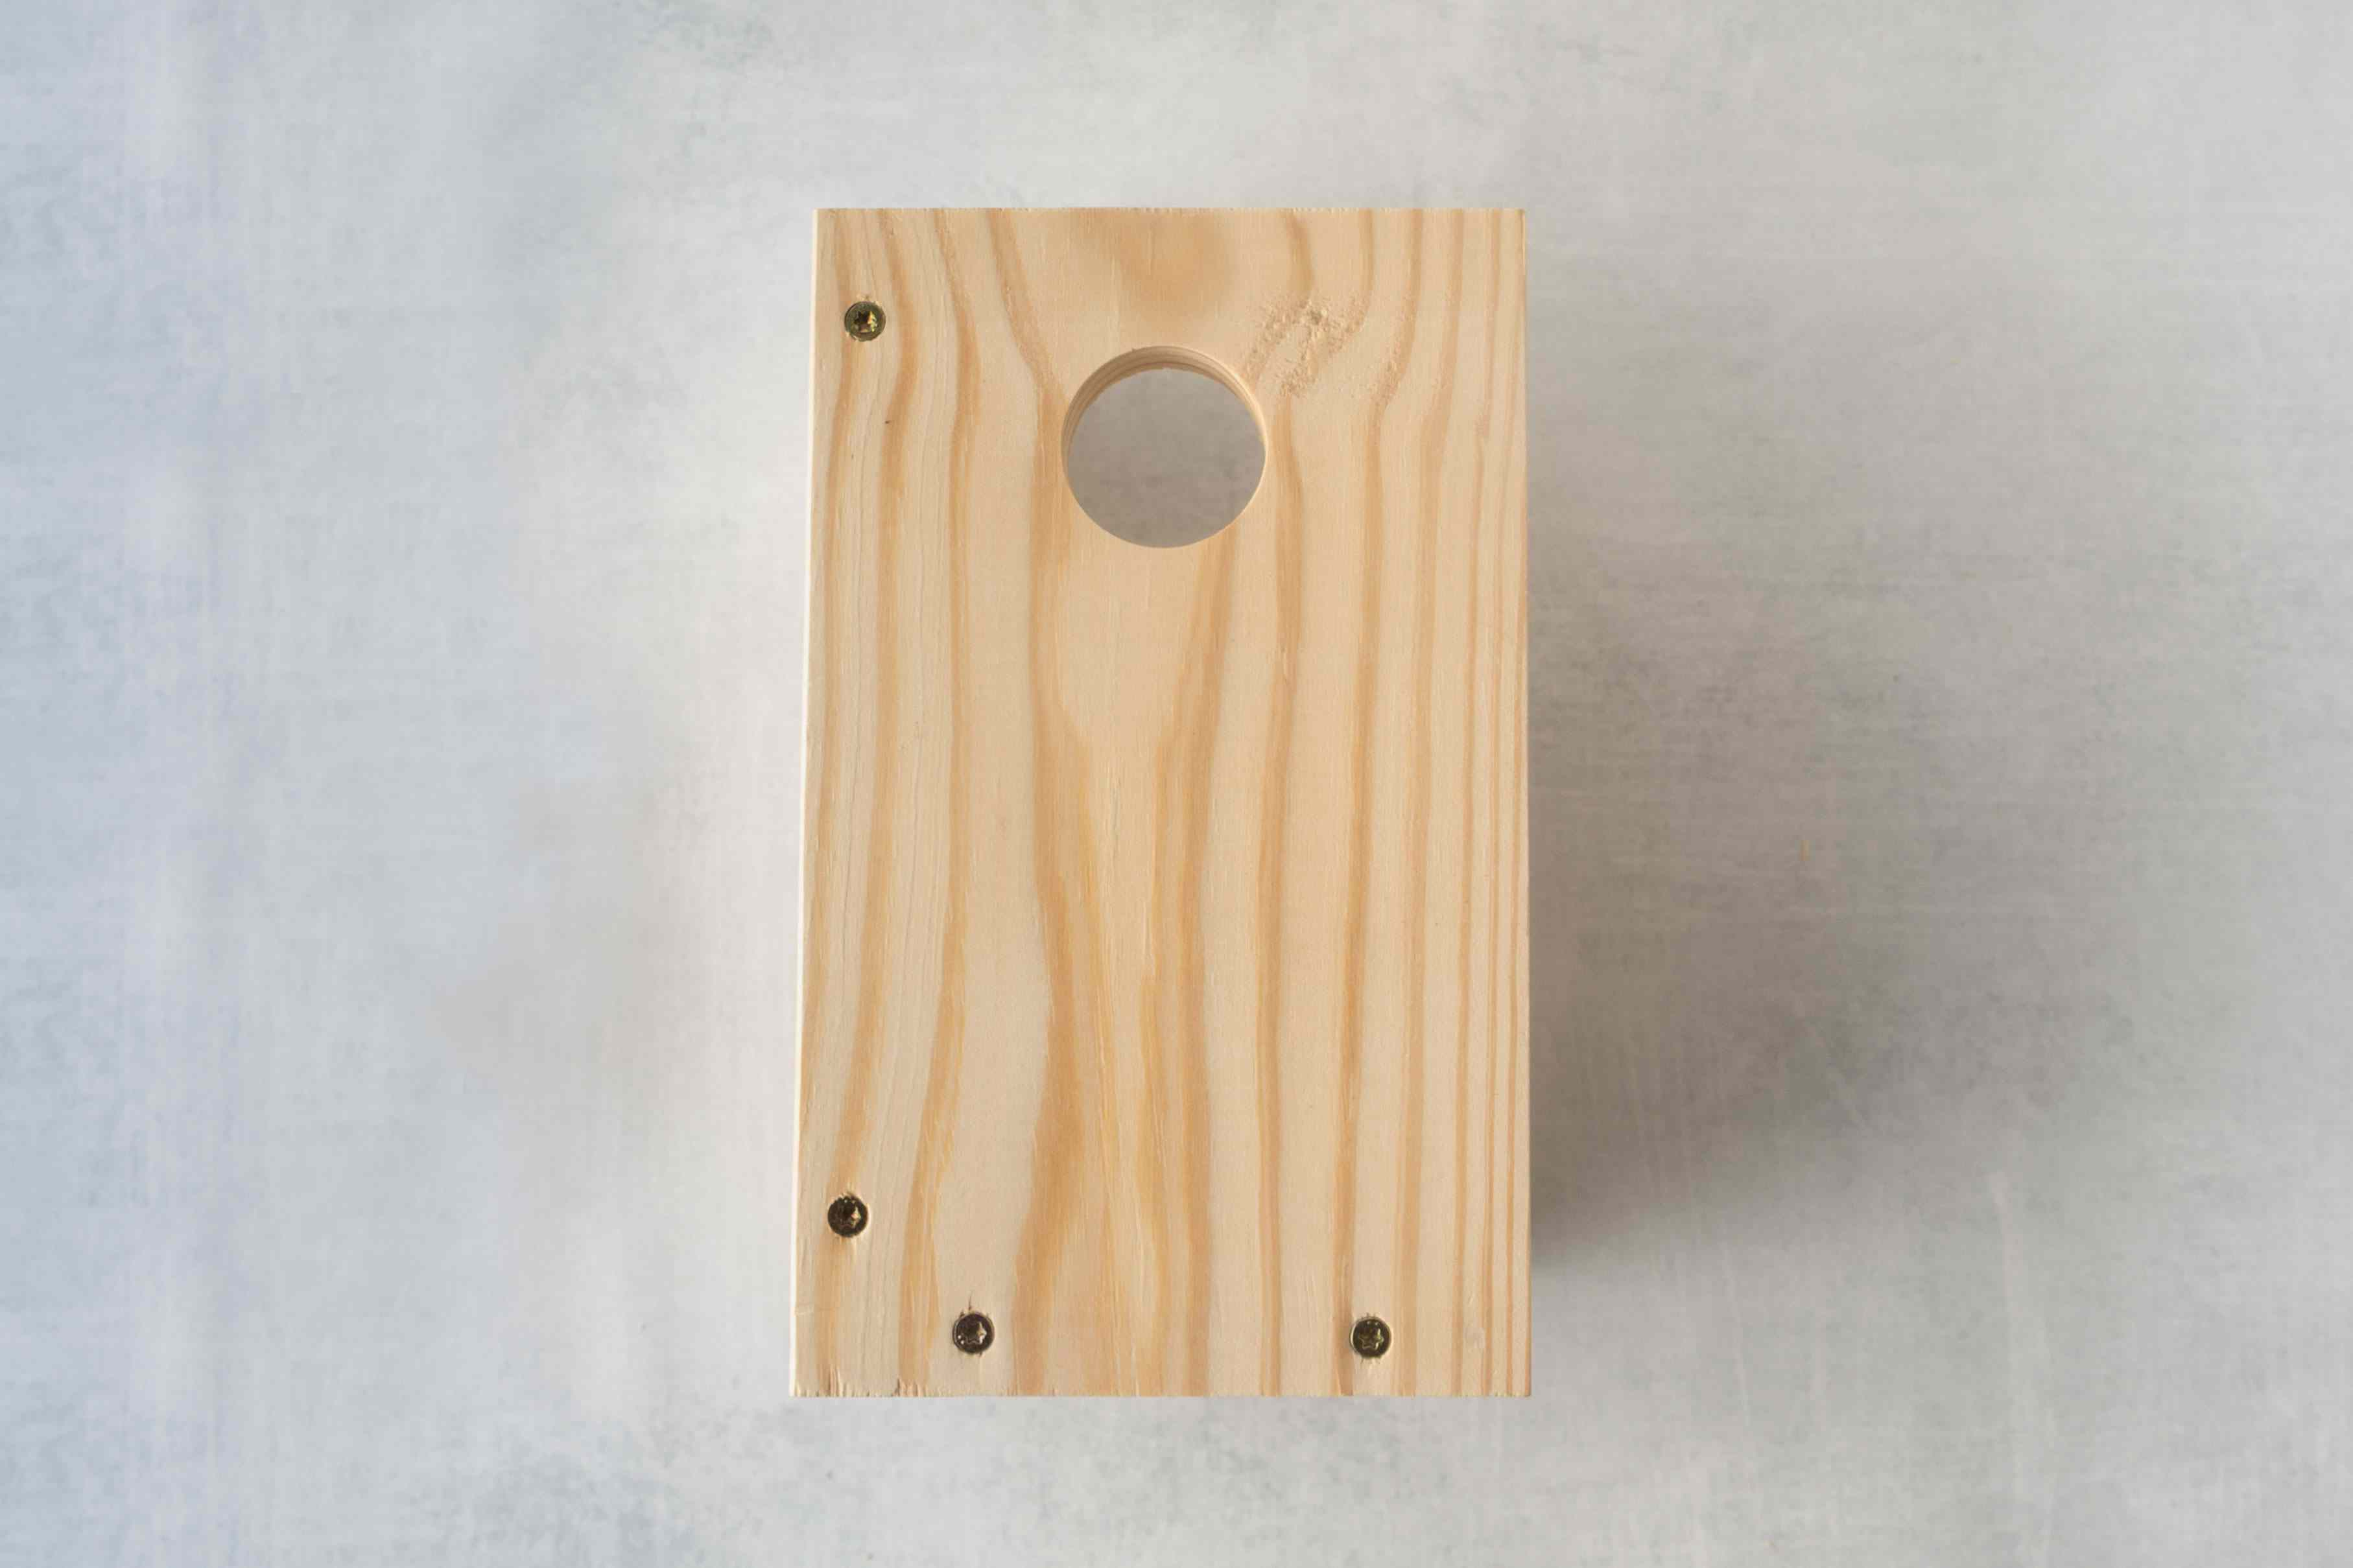 A pine board with all hole.